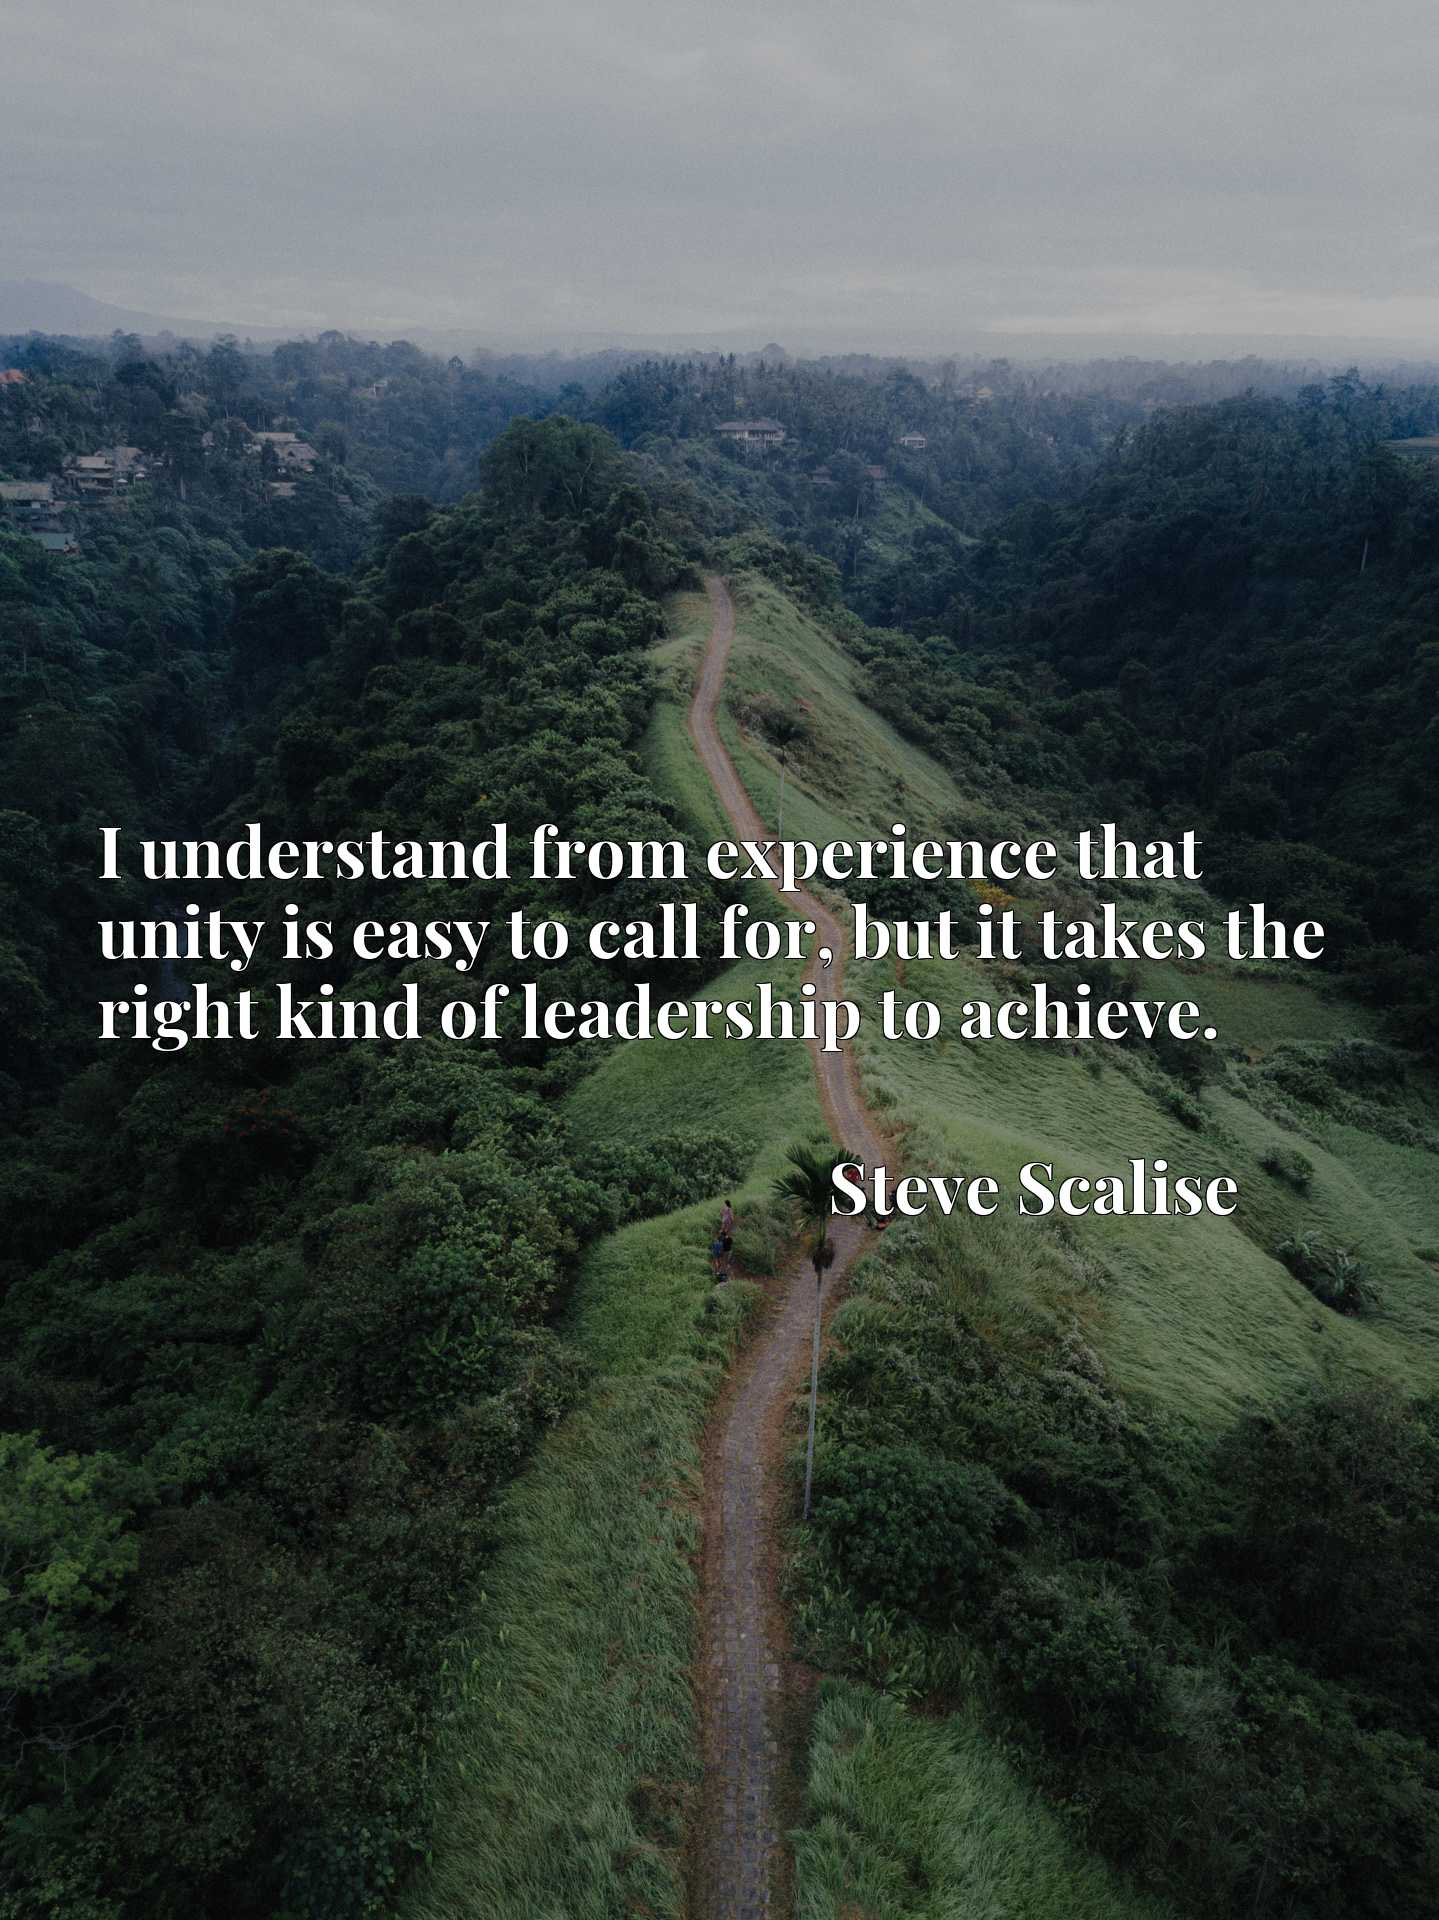 Quote Picture :I understand from experience that unity is easy to call for, but it takes the right kind of leadership to achieve.